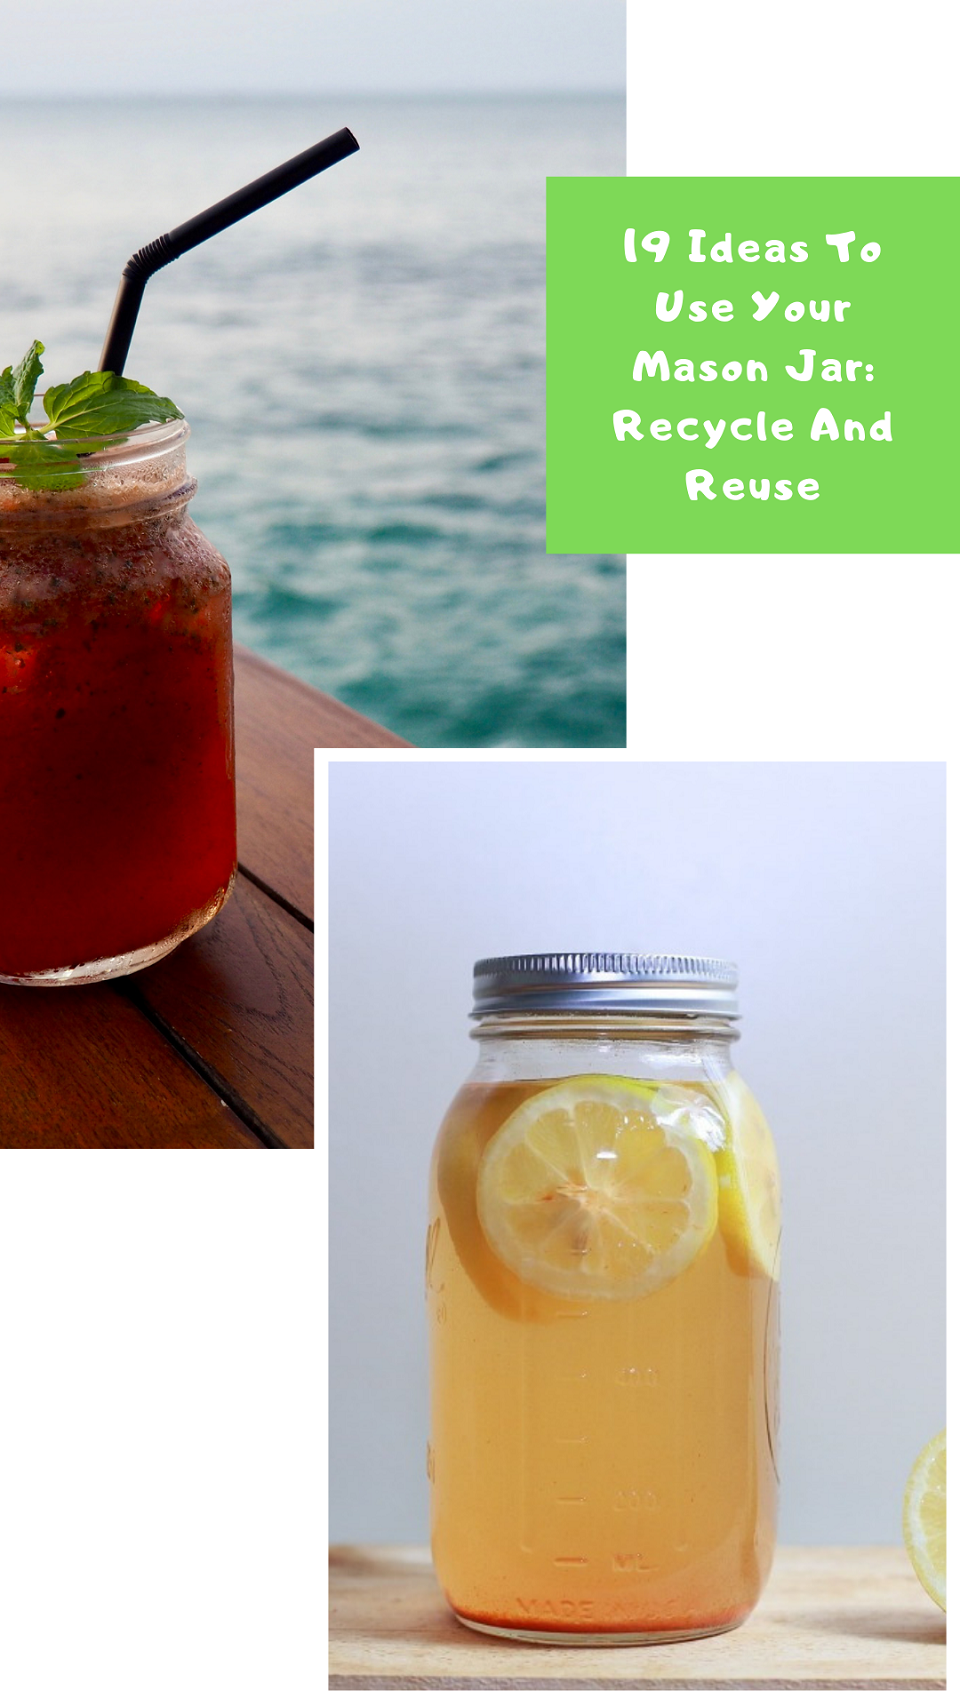 19 Ideas To Use Your Mason Jar: Recycle And Reuse: